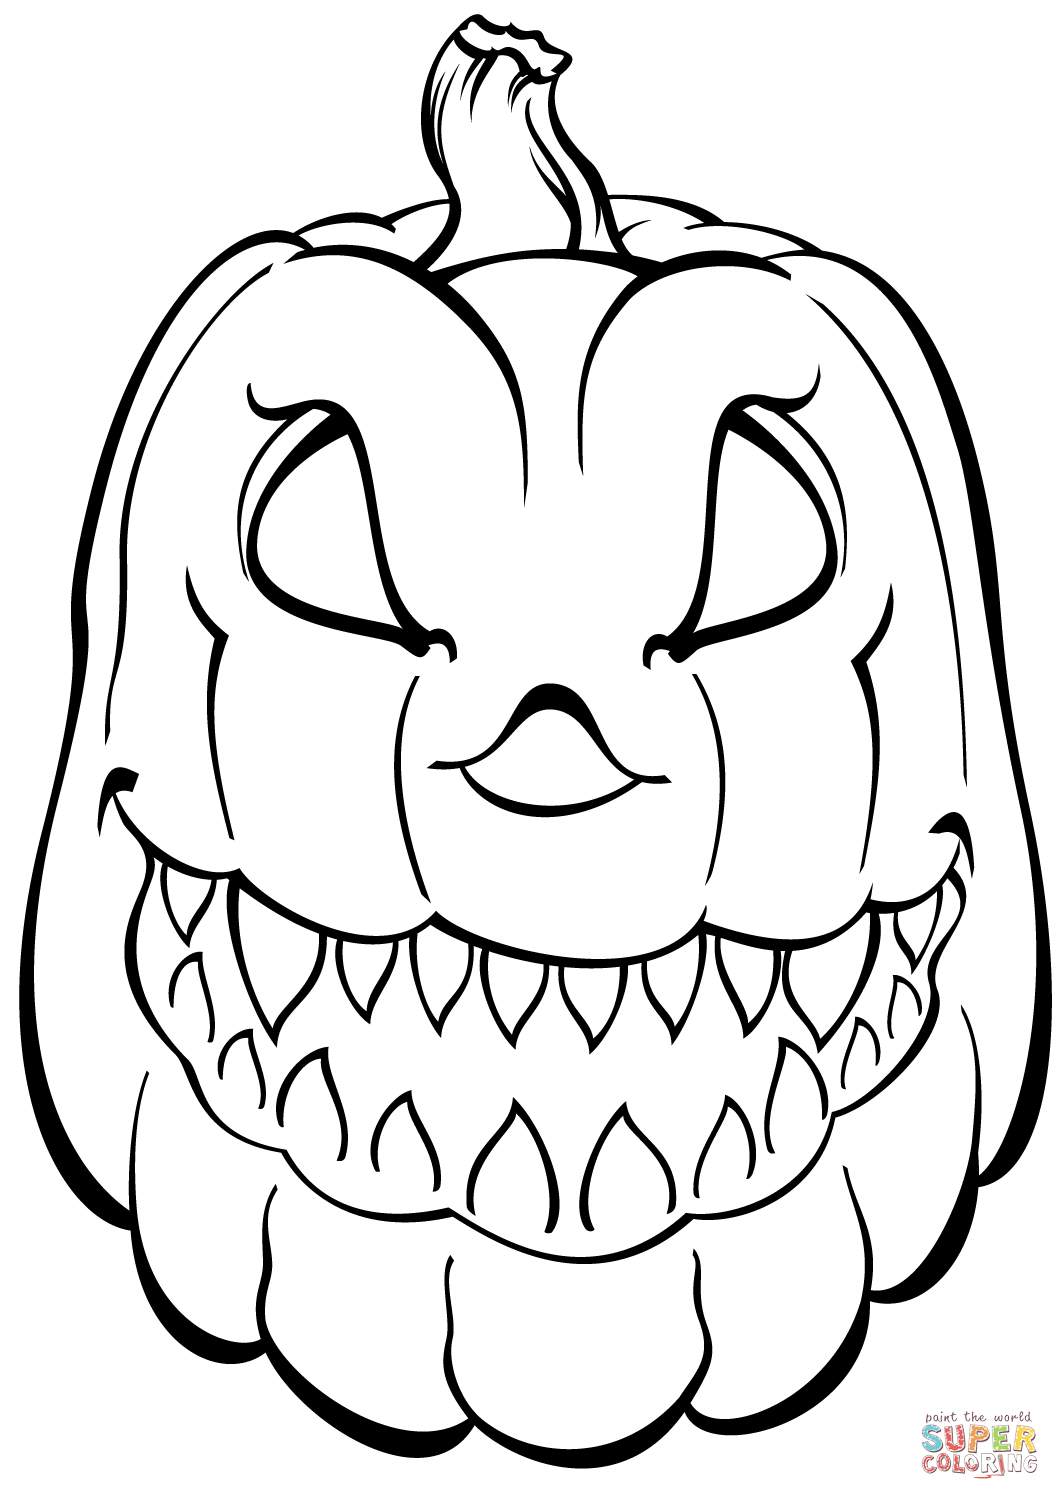 free printable pictures of pumpkins free printable pumpkin coloring pages for kids cool2bkids pictures free printable pumpkins of